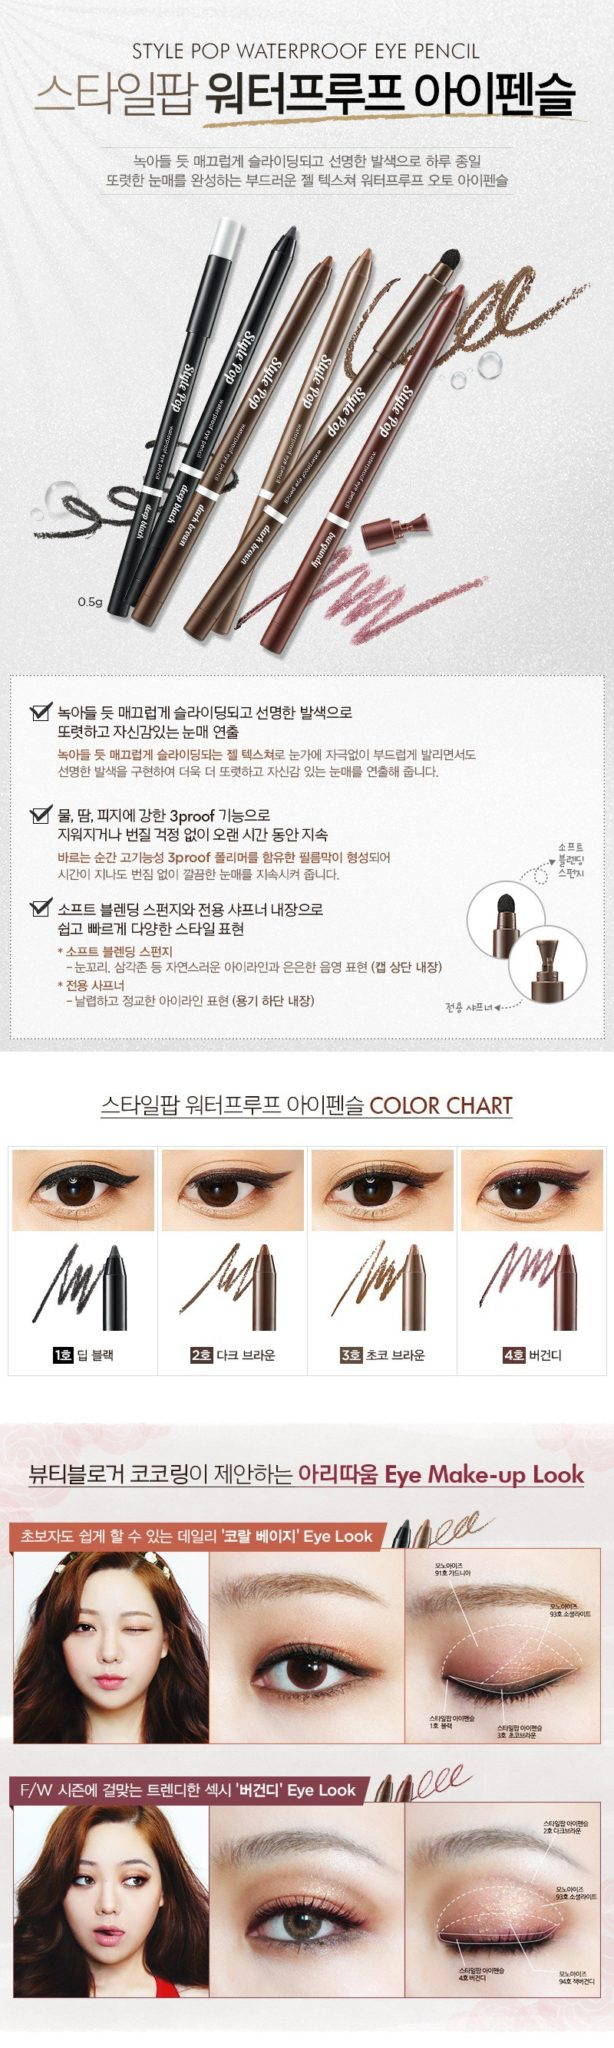 ARITAUM Style Pop Waterproof Eye Pencil 1g